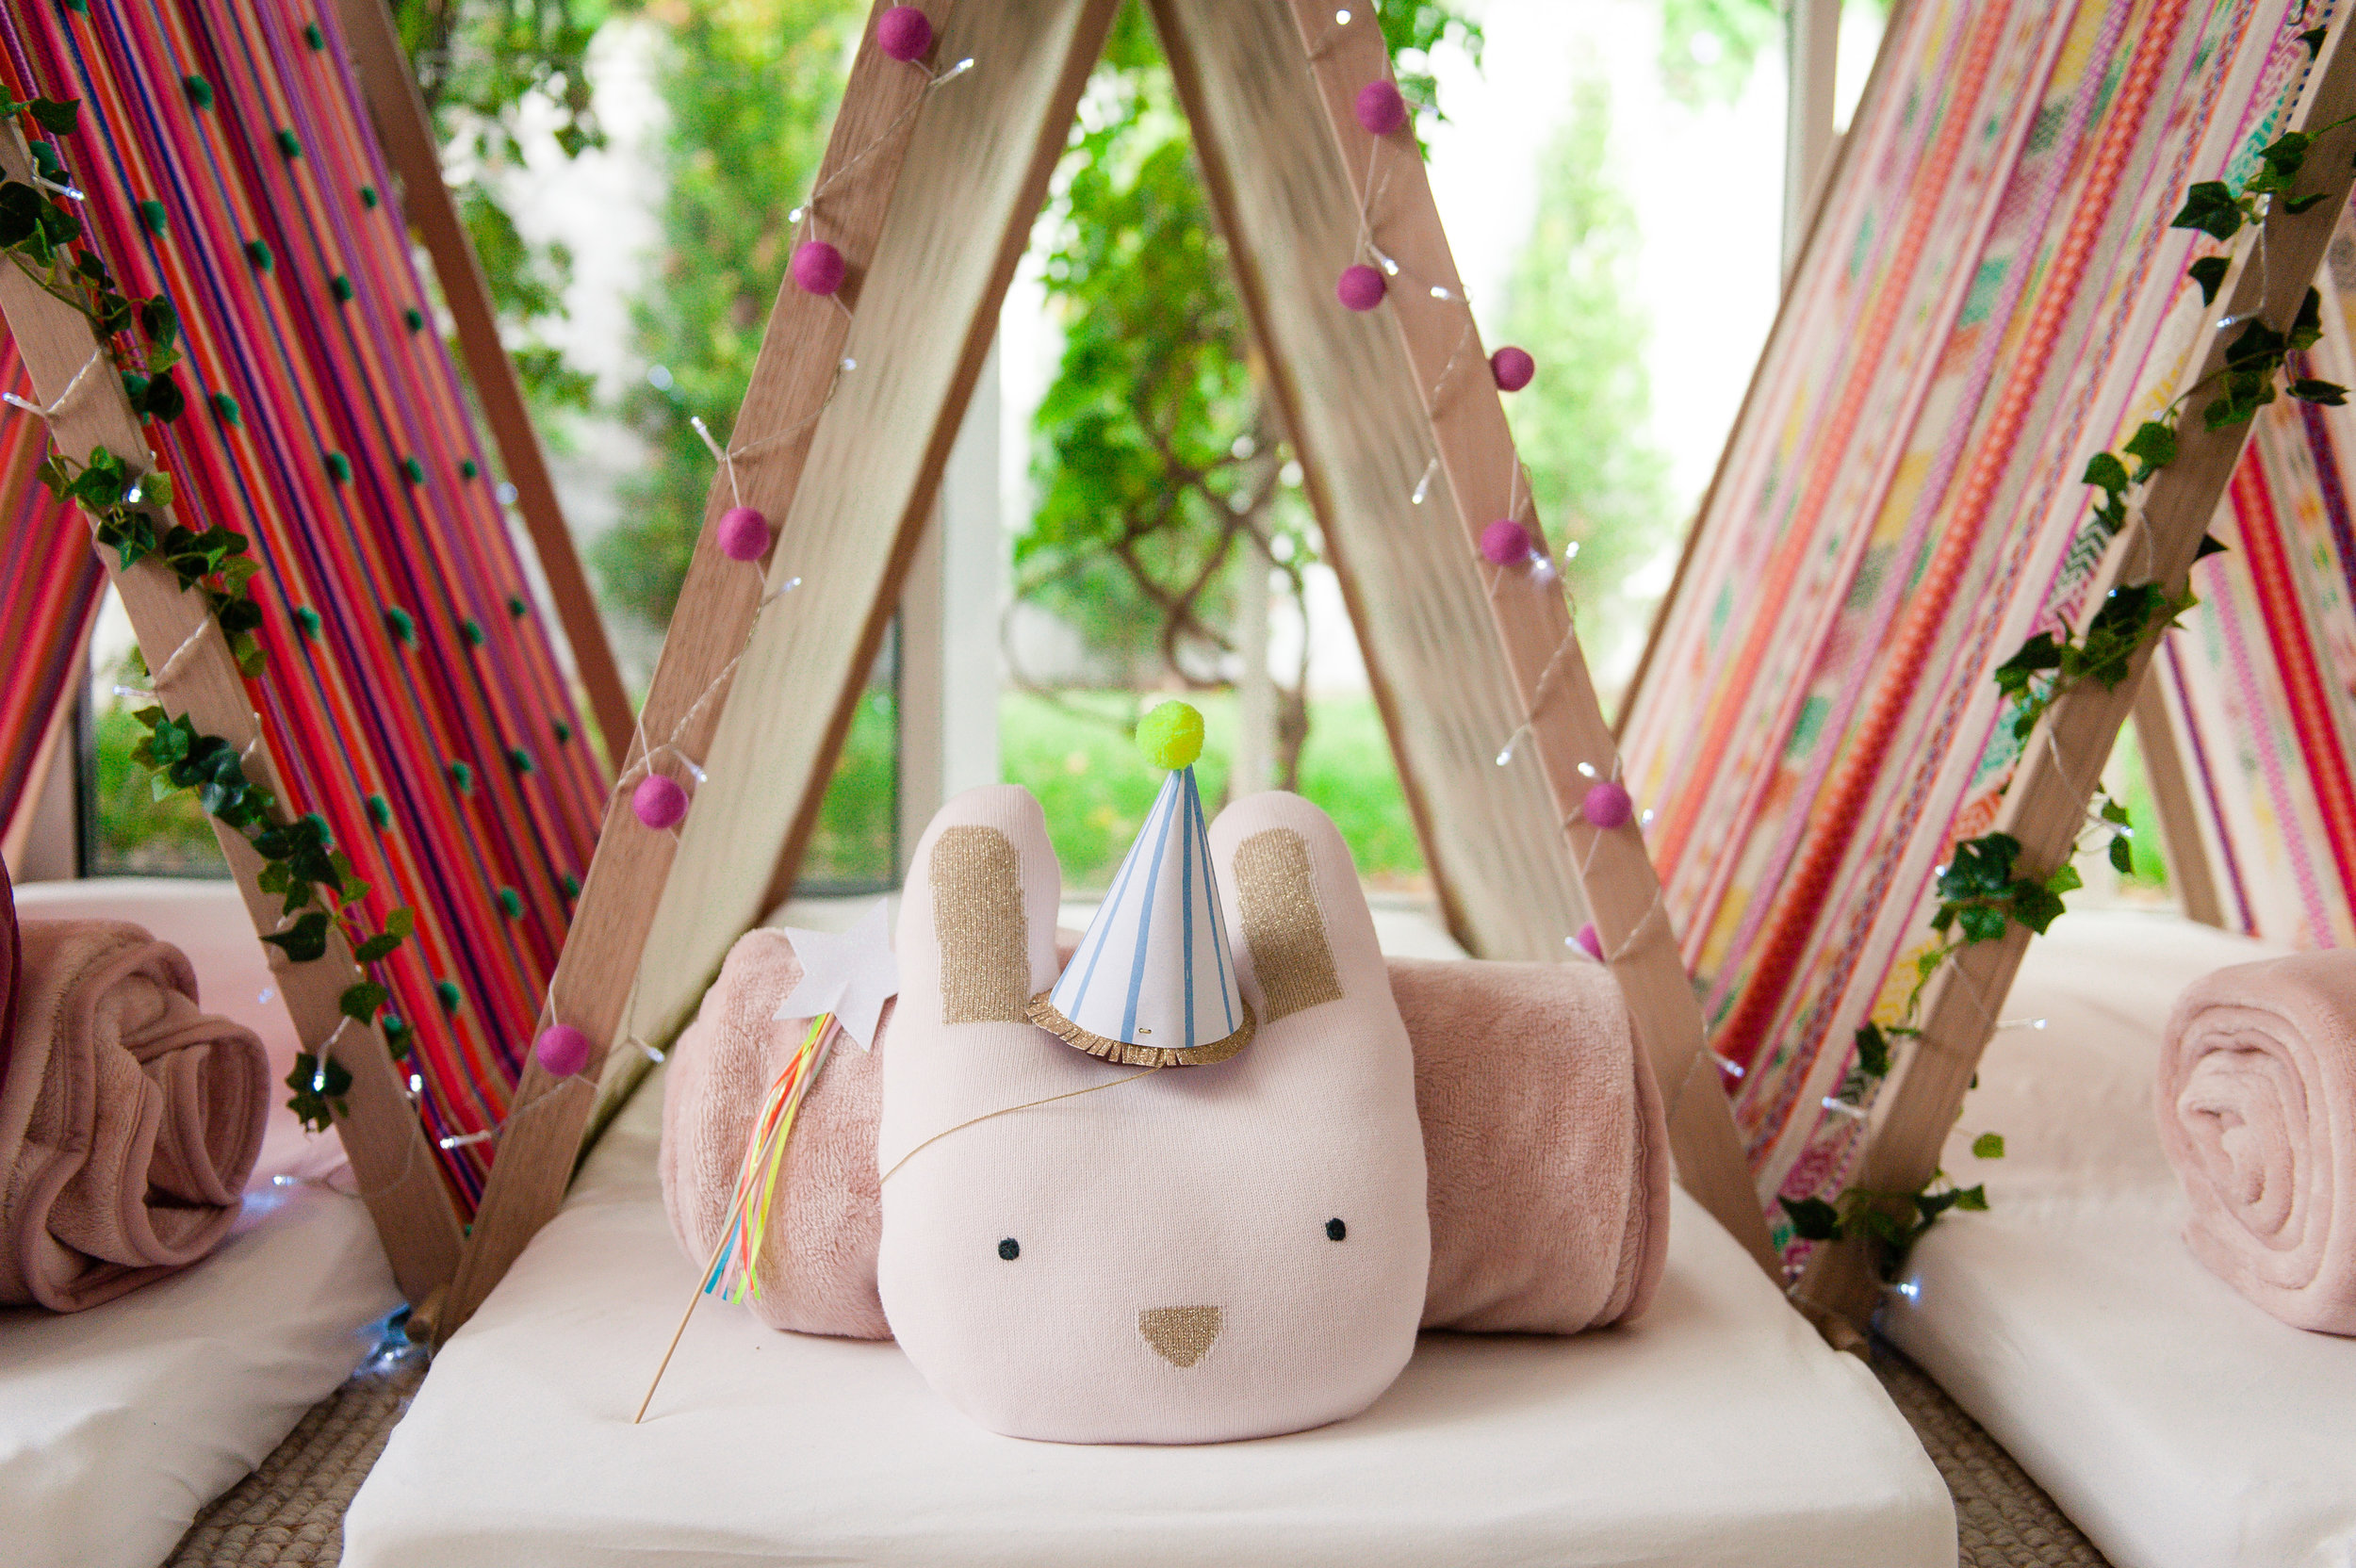 Bohemian Dreams Teepee Dreams sleepover slumber parties Melbourne